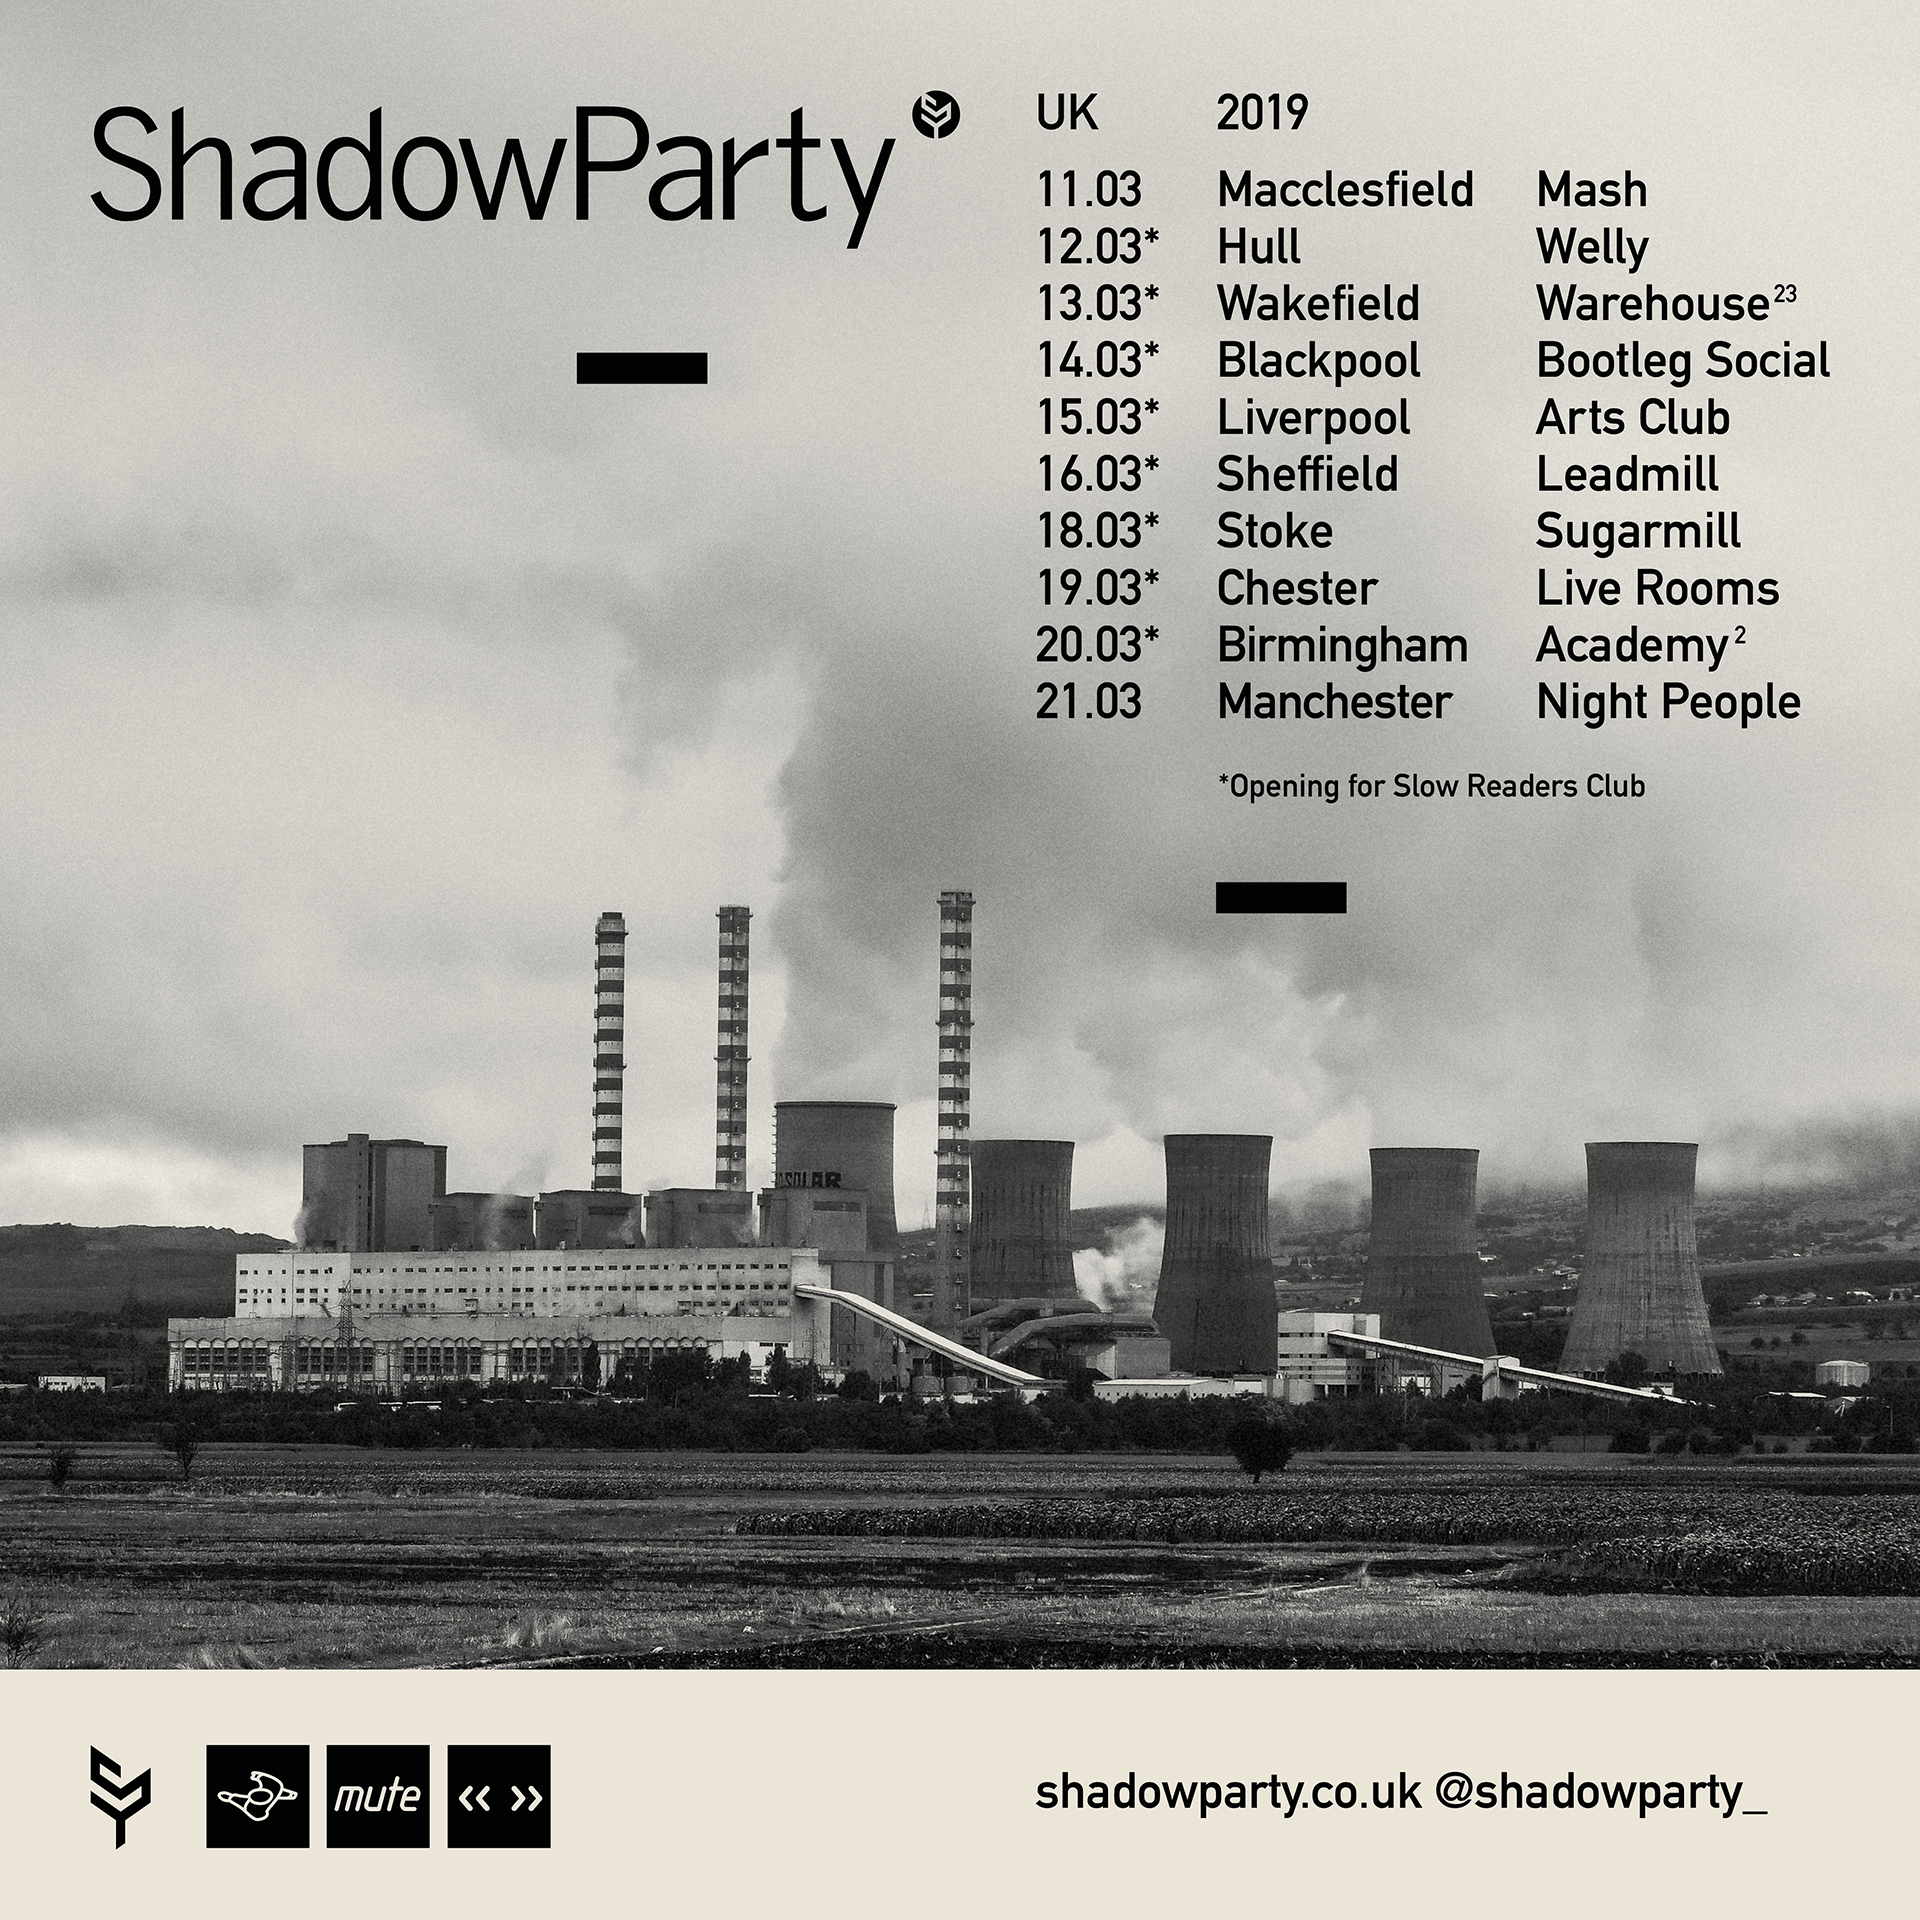 ShadowParty 2019 Tour